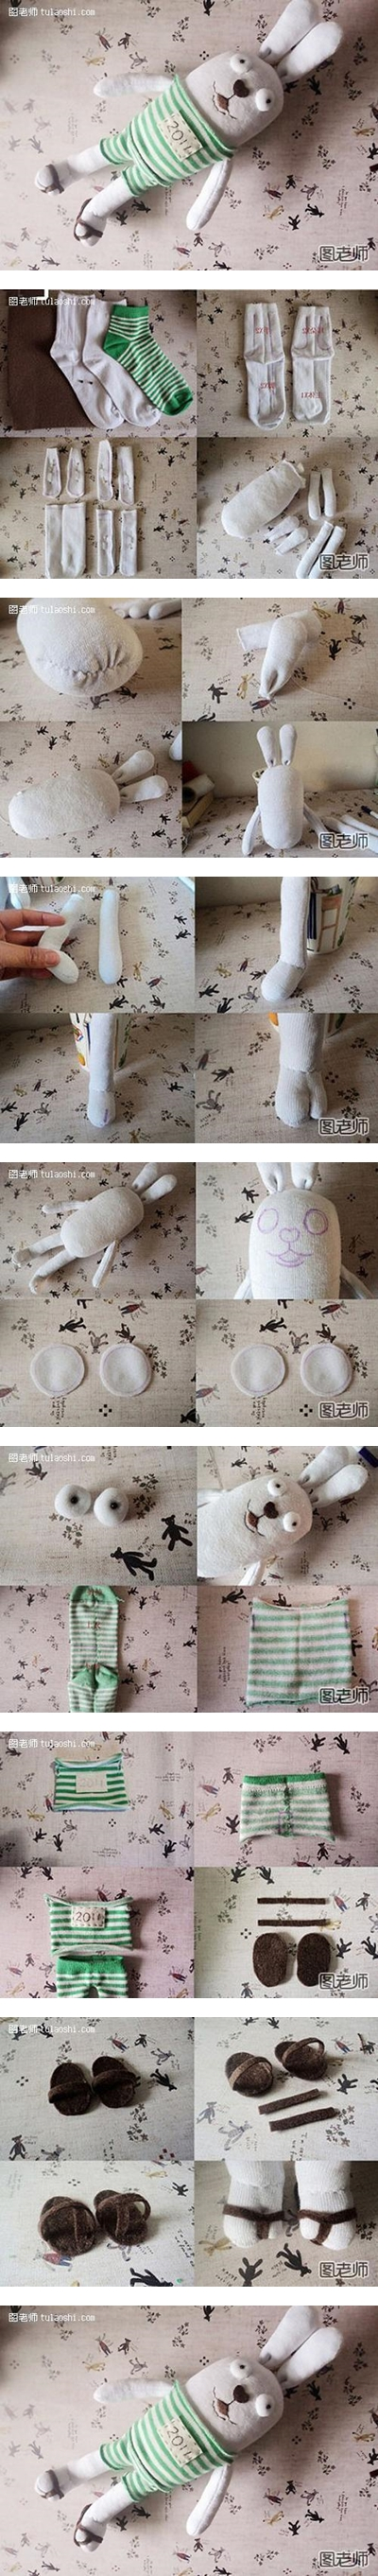 How to make your own stuffed bunny toy step by step DIY instructions